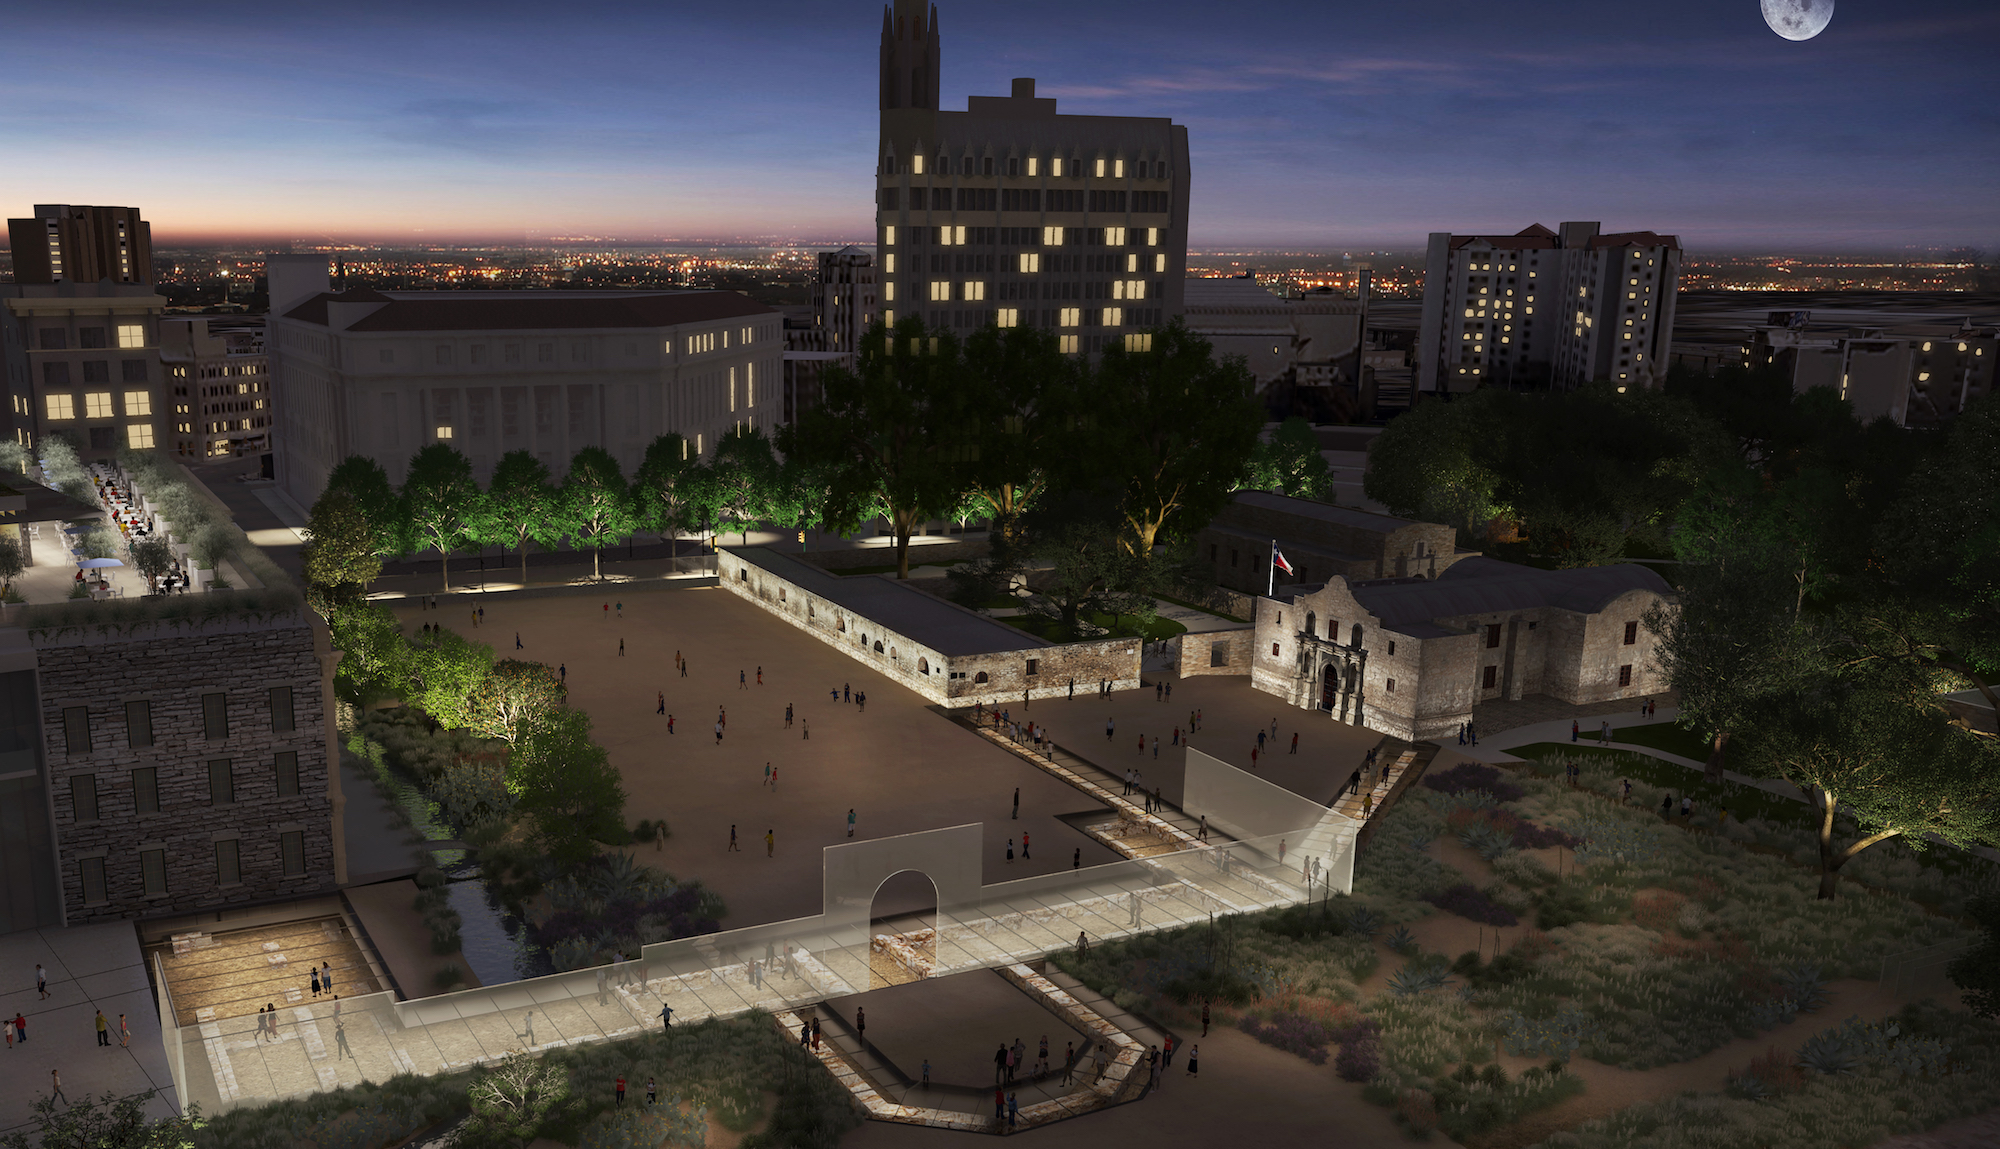 This rendering shows Alamo Plaza (looking northeast from above) at dusk.